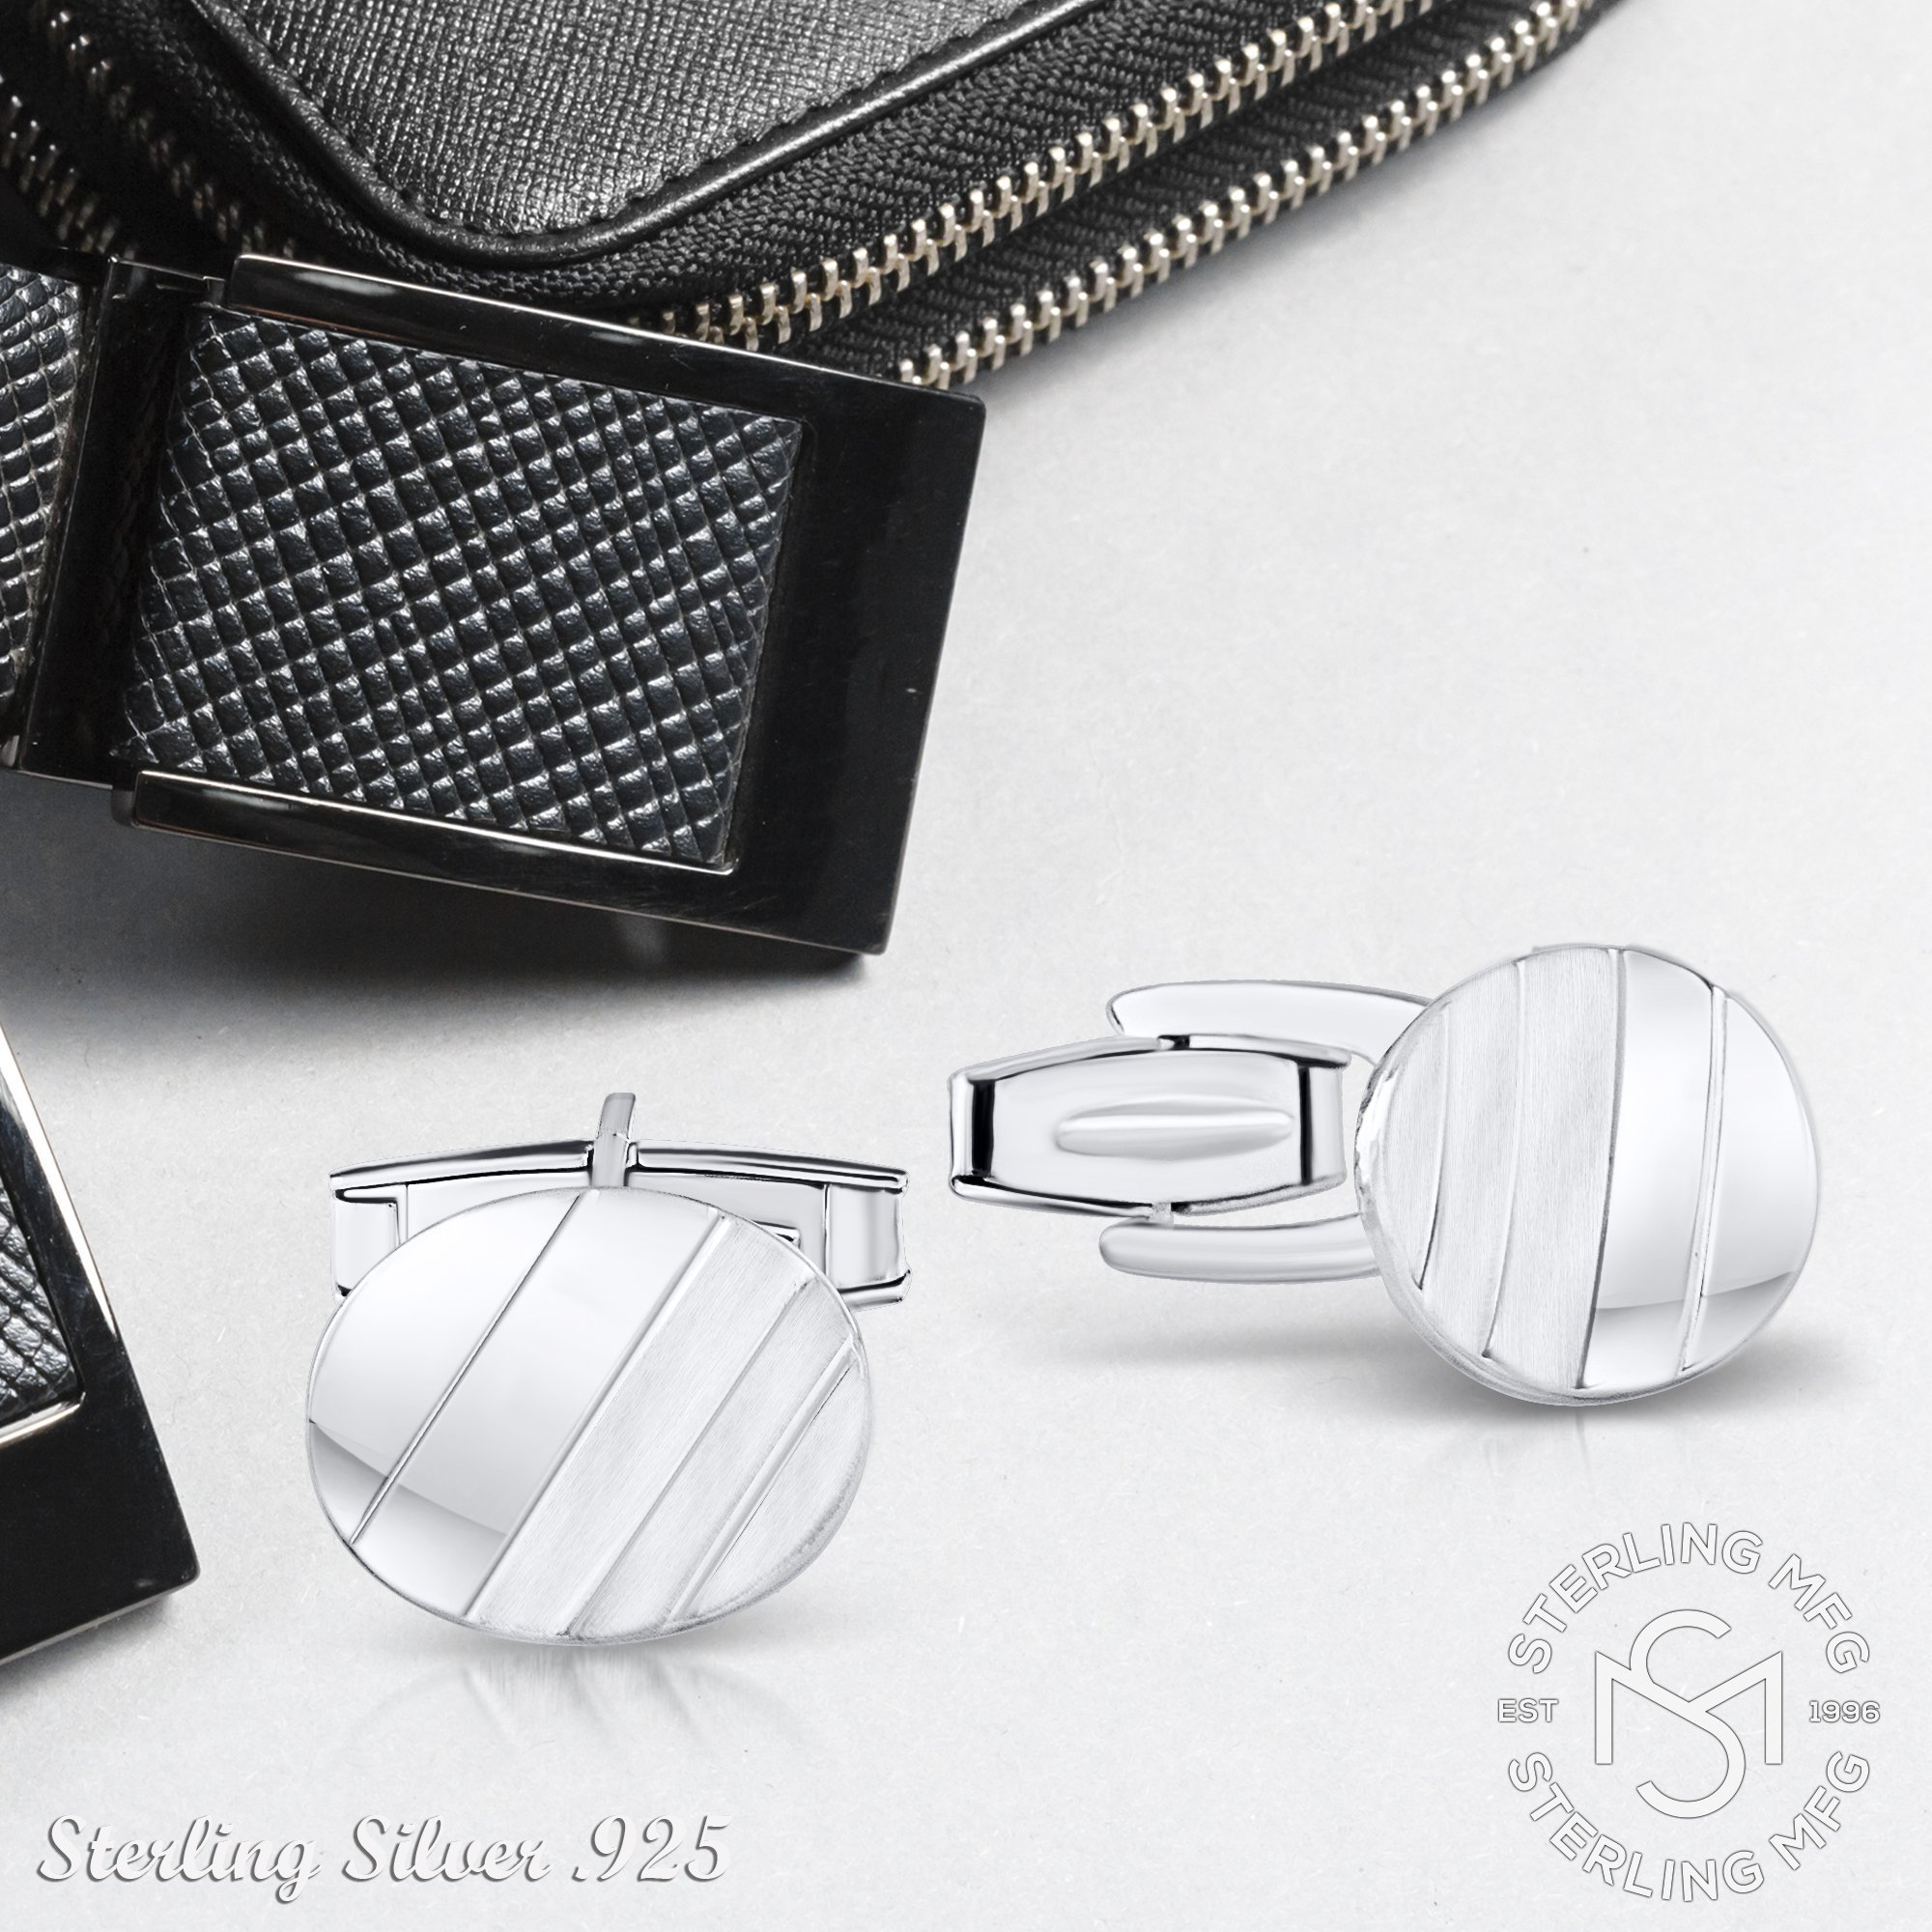 Men's Sterling Silver .925 Oval Striped Design Cufflinks with Satin Finish. Made In Italy. By Sterling Manufacturers by Sterling Manufacturers (Image #6)